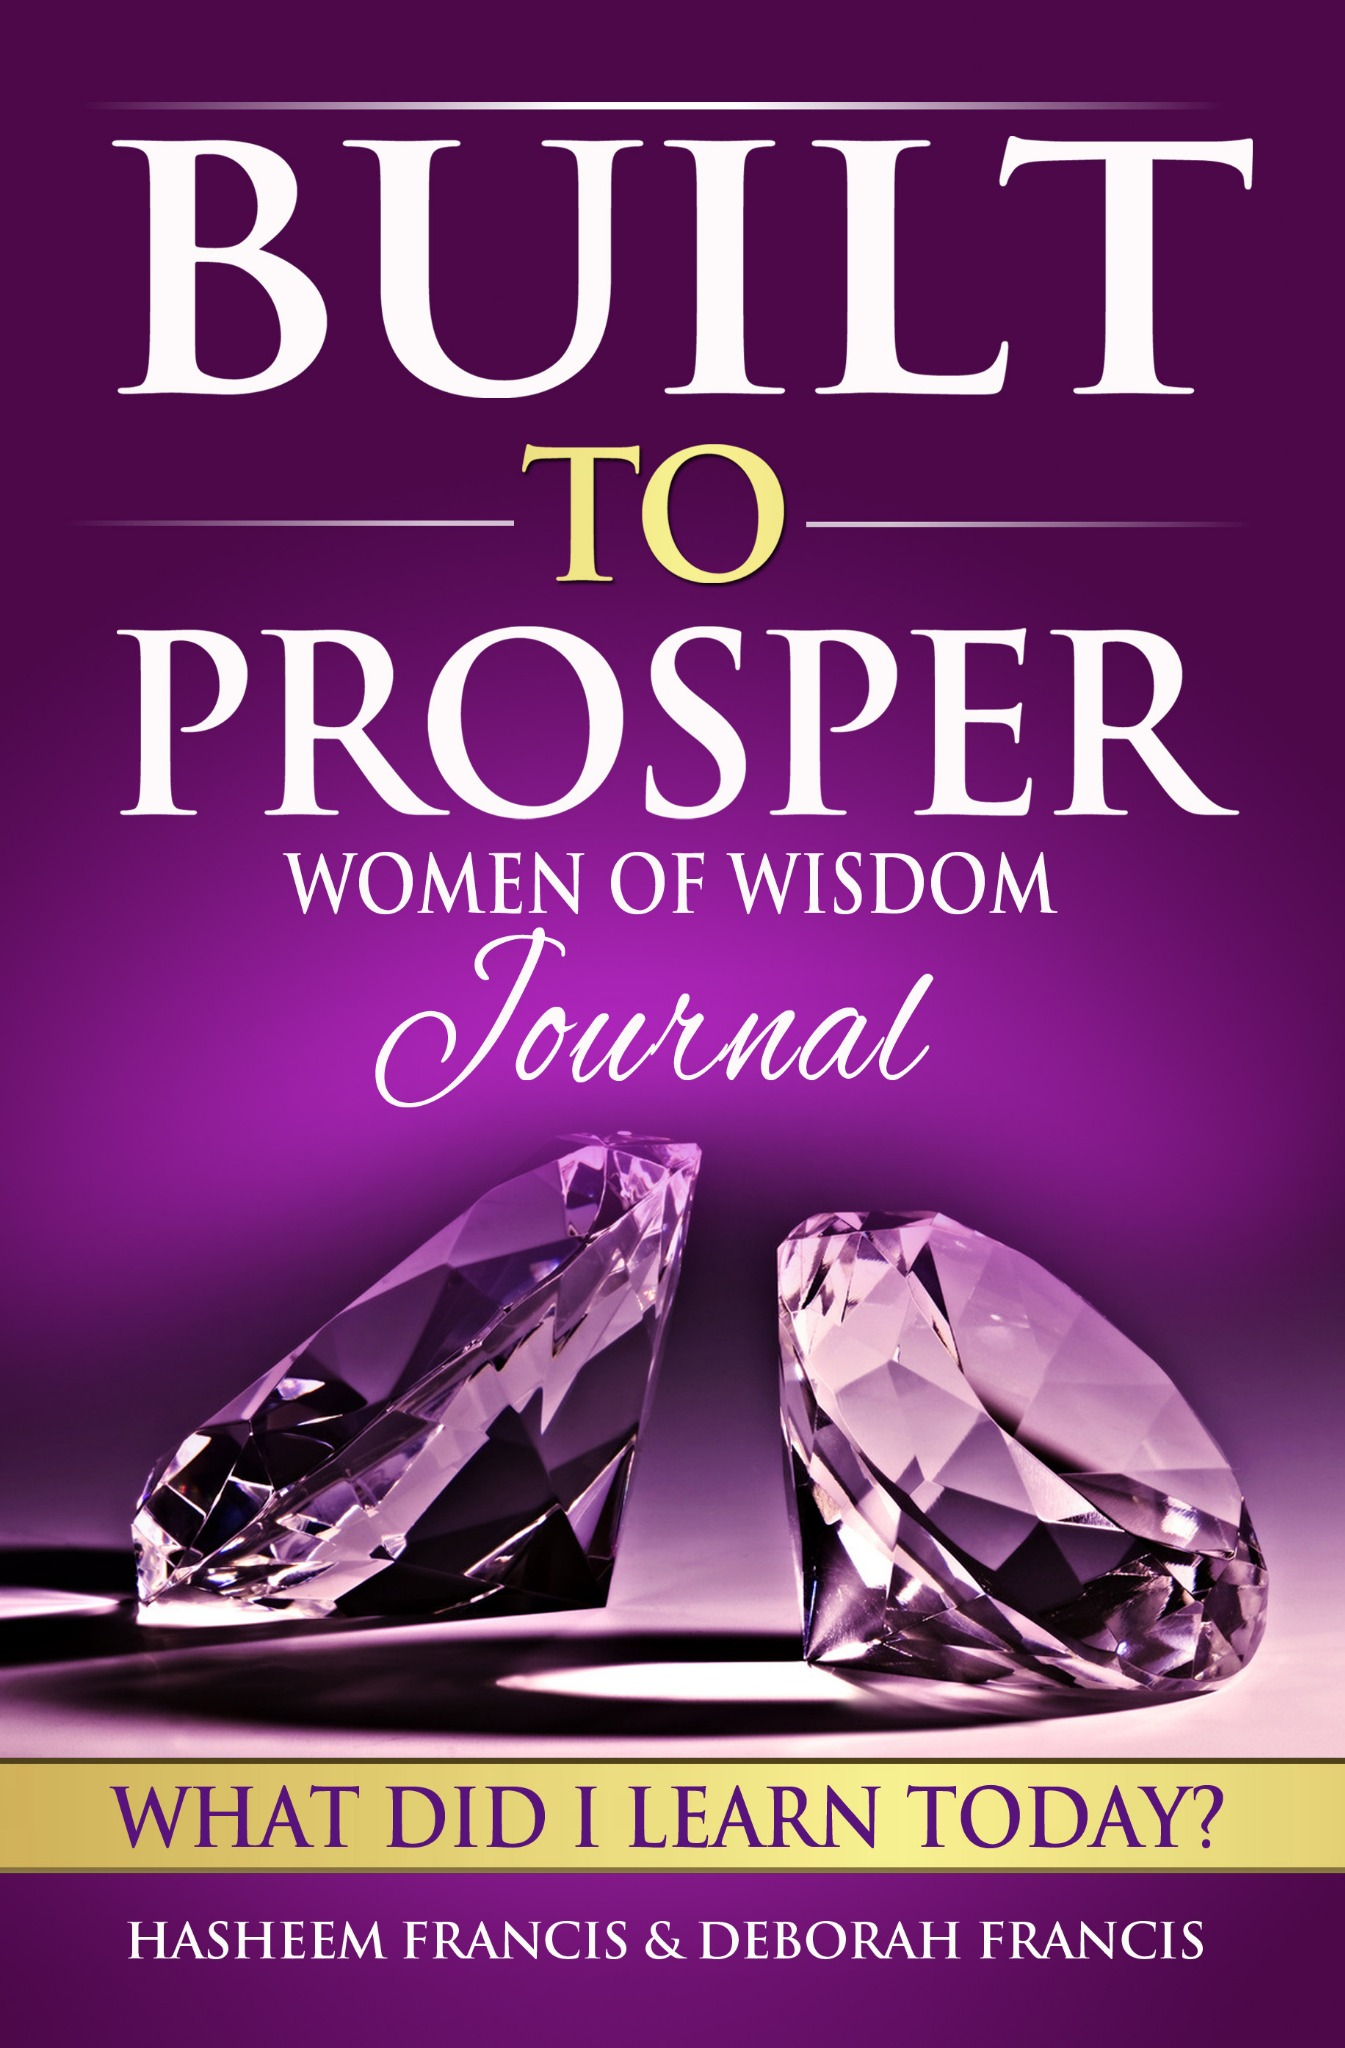 Built To Prosper Women of Wisdom Journal